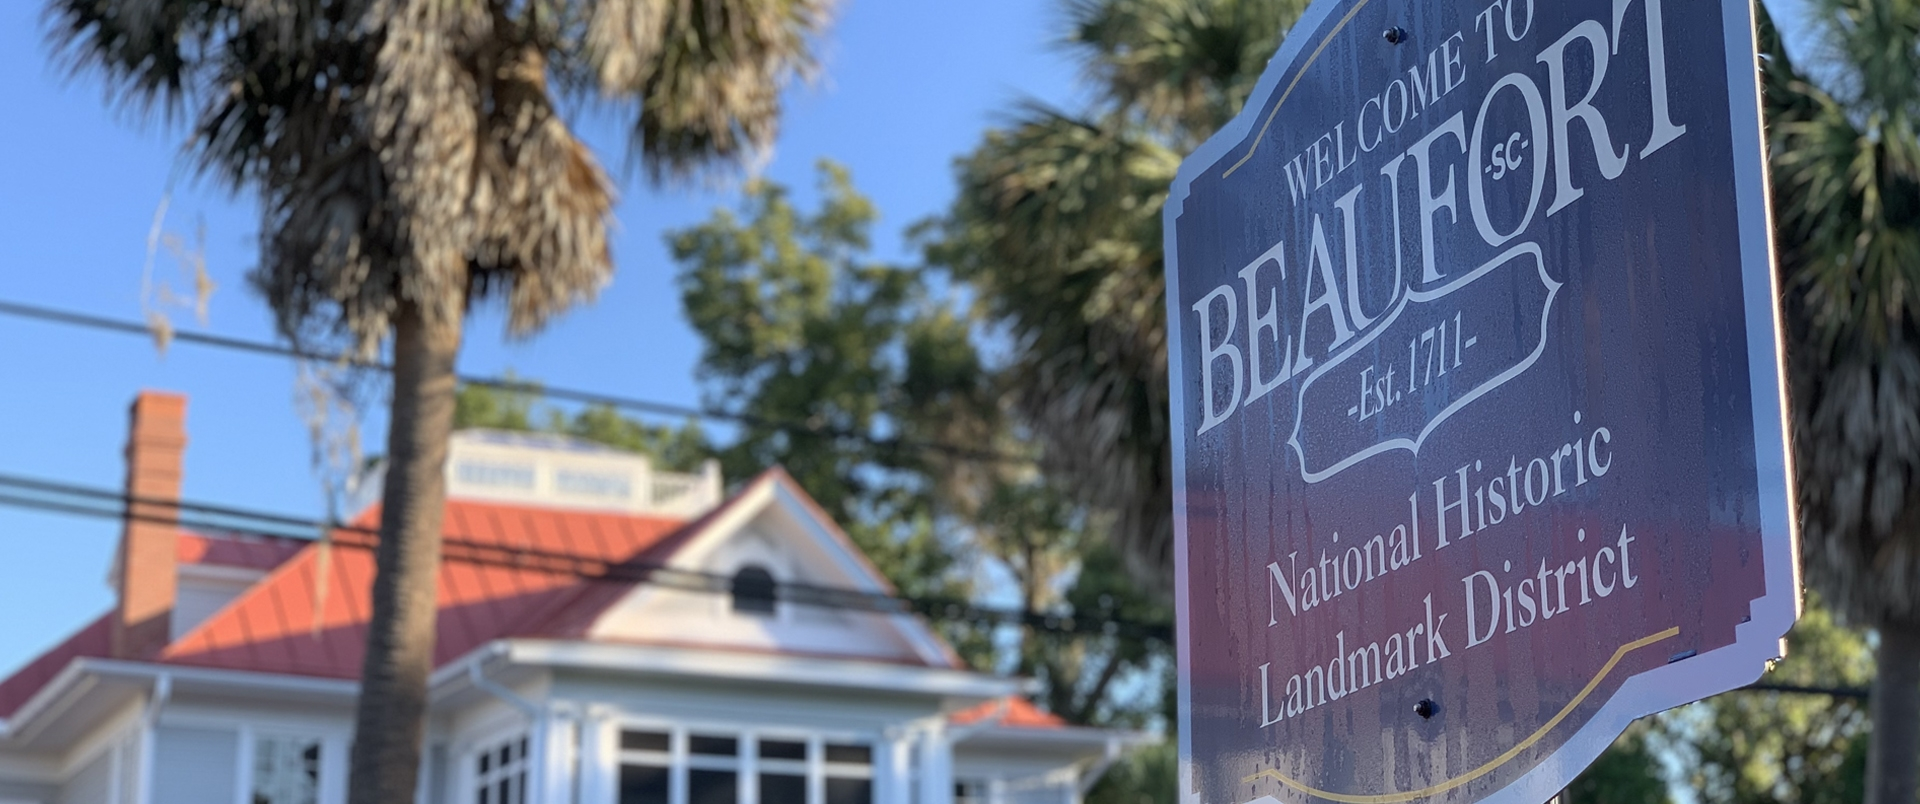 Help keep Beaufort beautiful this Earth Day